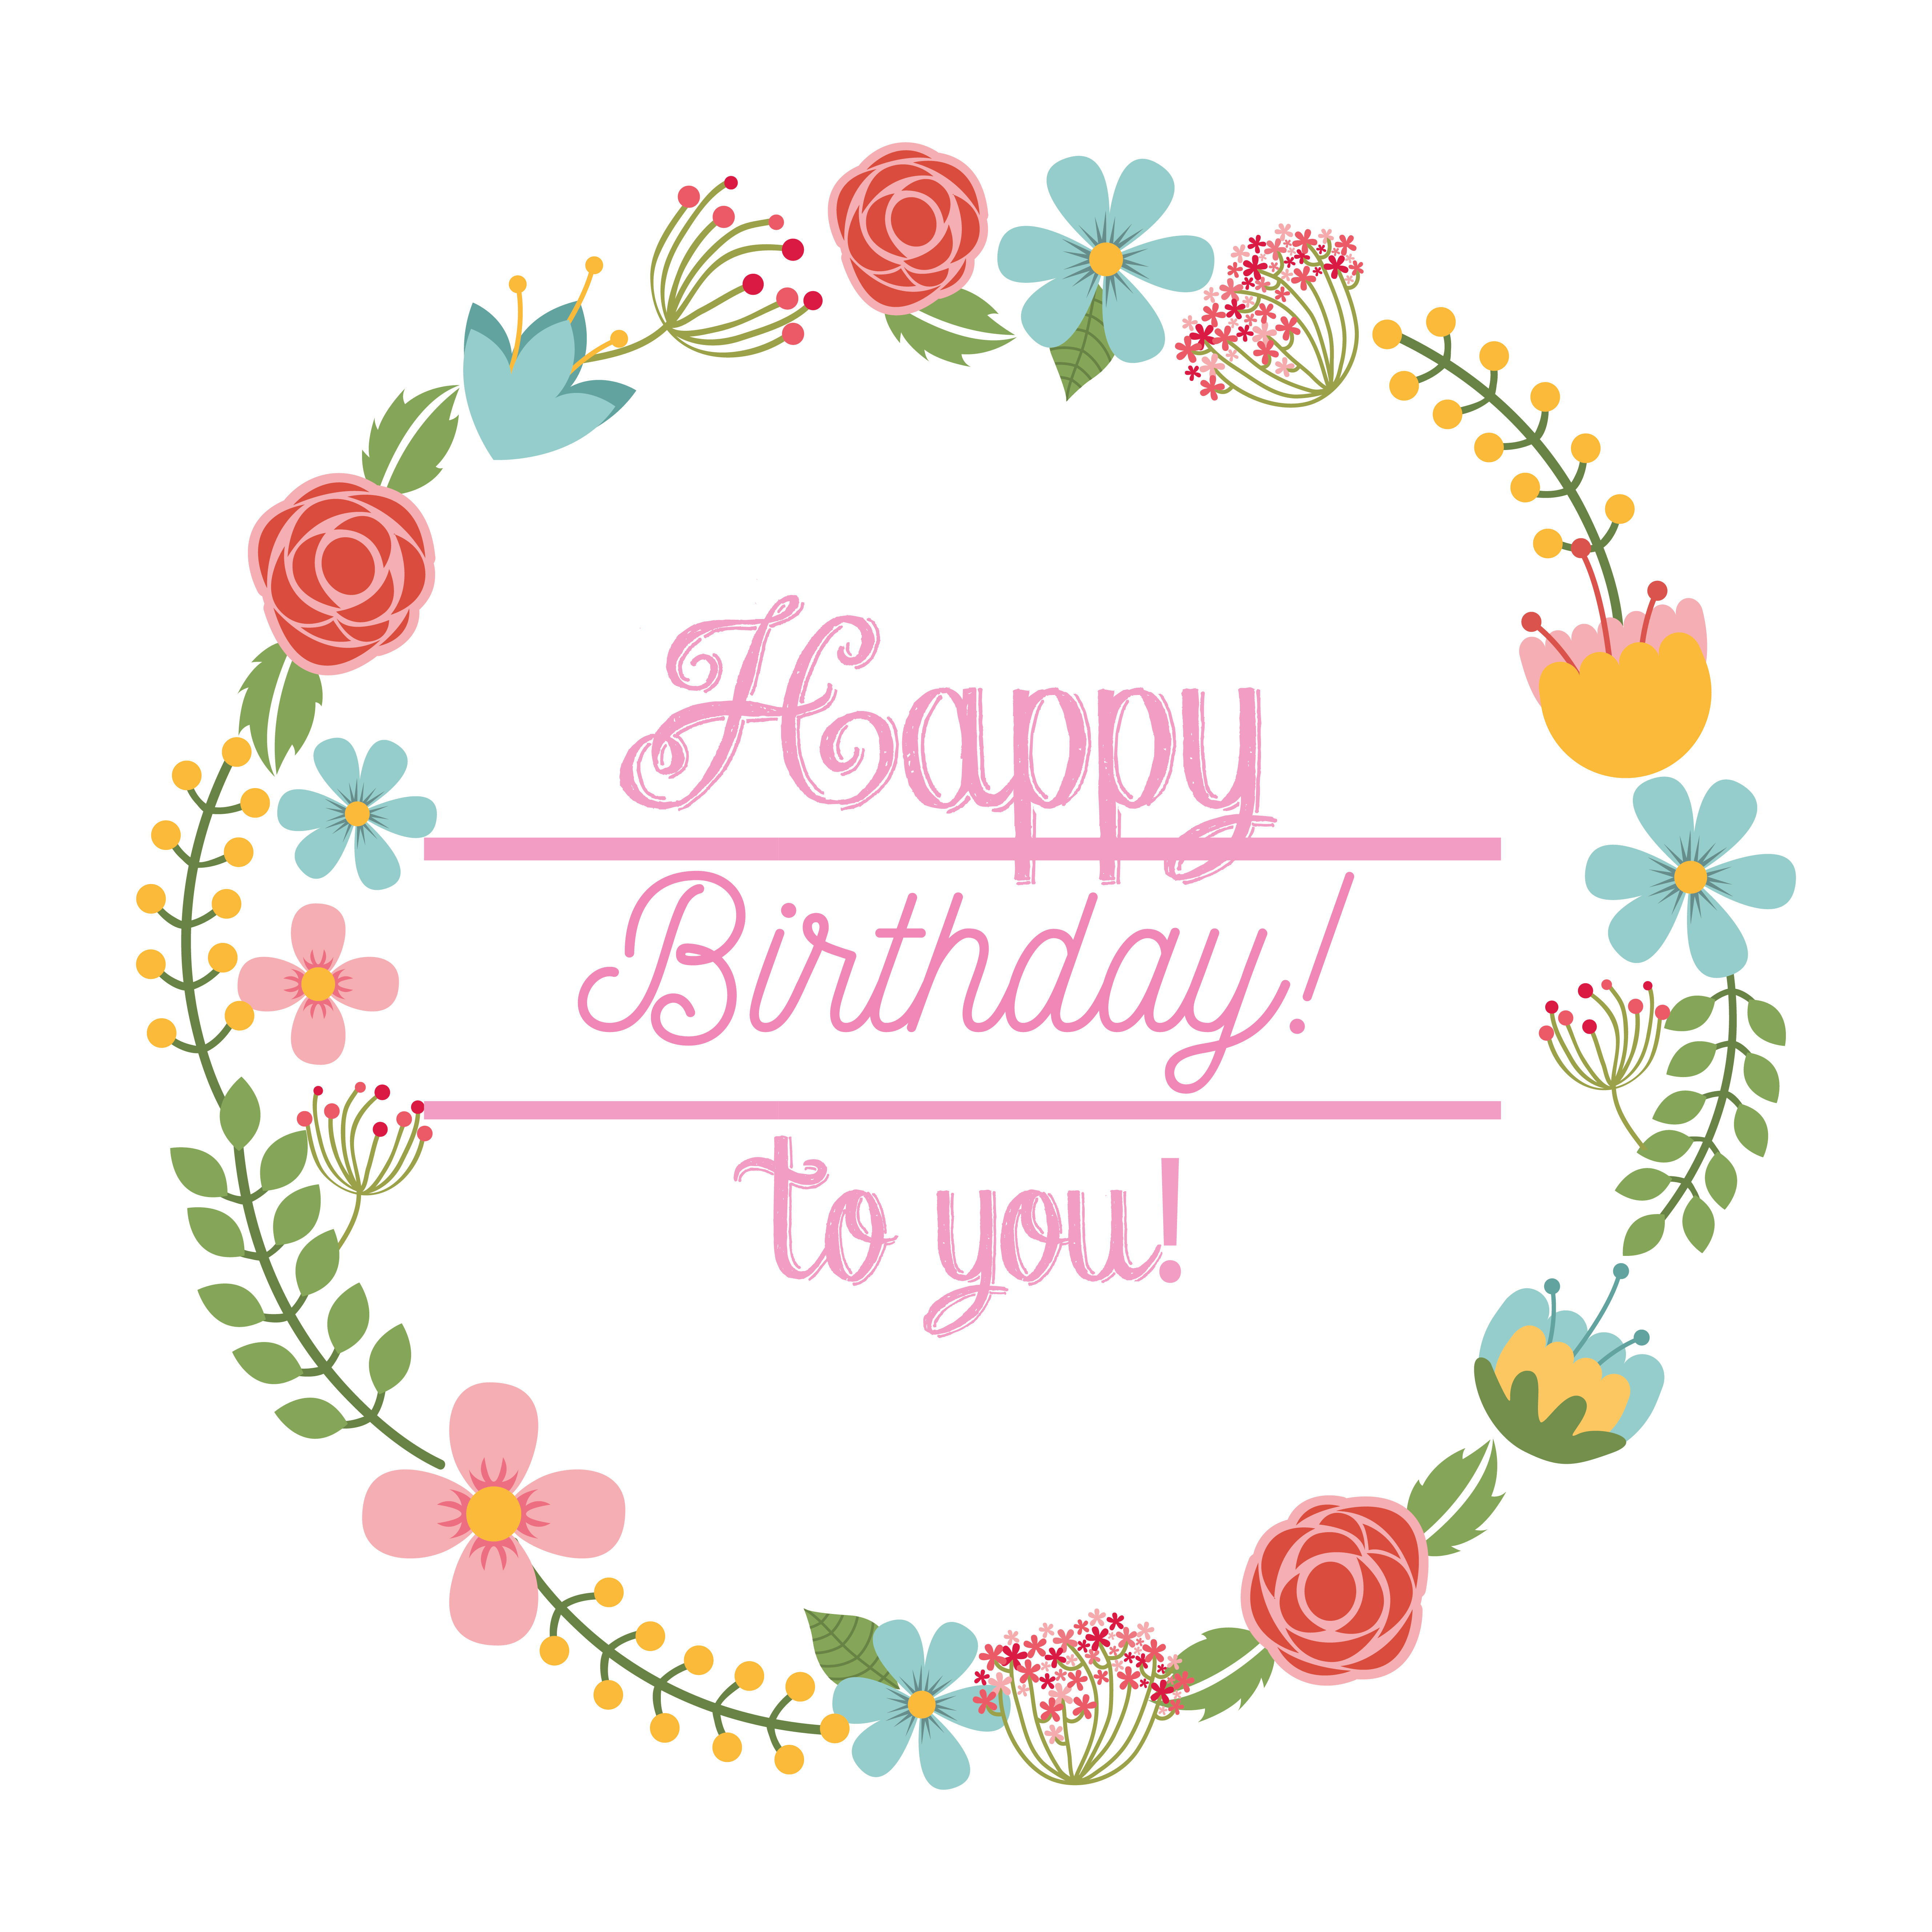 happy birthday card floral wreath 685790  download free